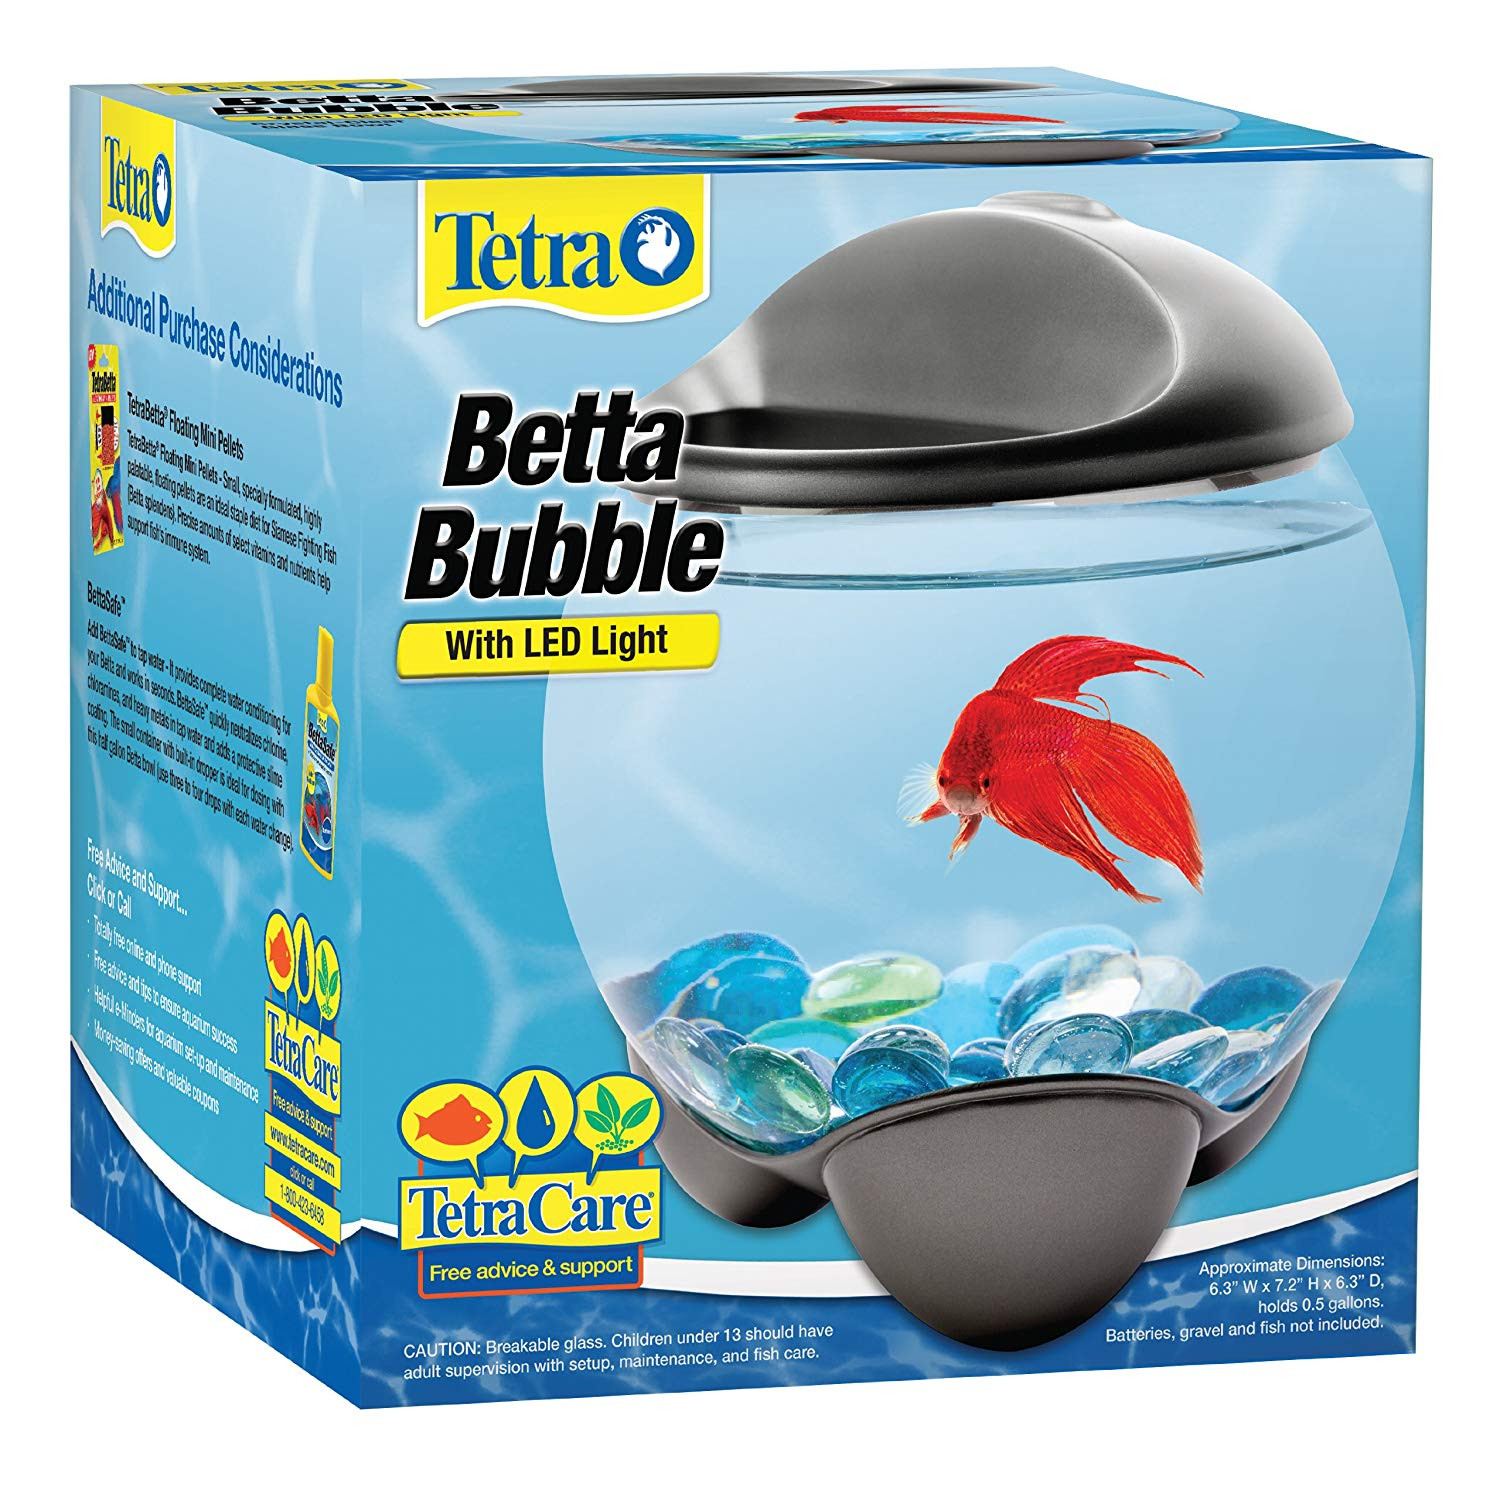 Betta Vase Kit Of Amazon Com Tetra 29263 Betta Bubble Betta Bowl with Built In Led with Amazon Com Tetra 29263 Betta Bubble Betta Bowl with Built In Led Light Fish Bowls Pet Supplies